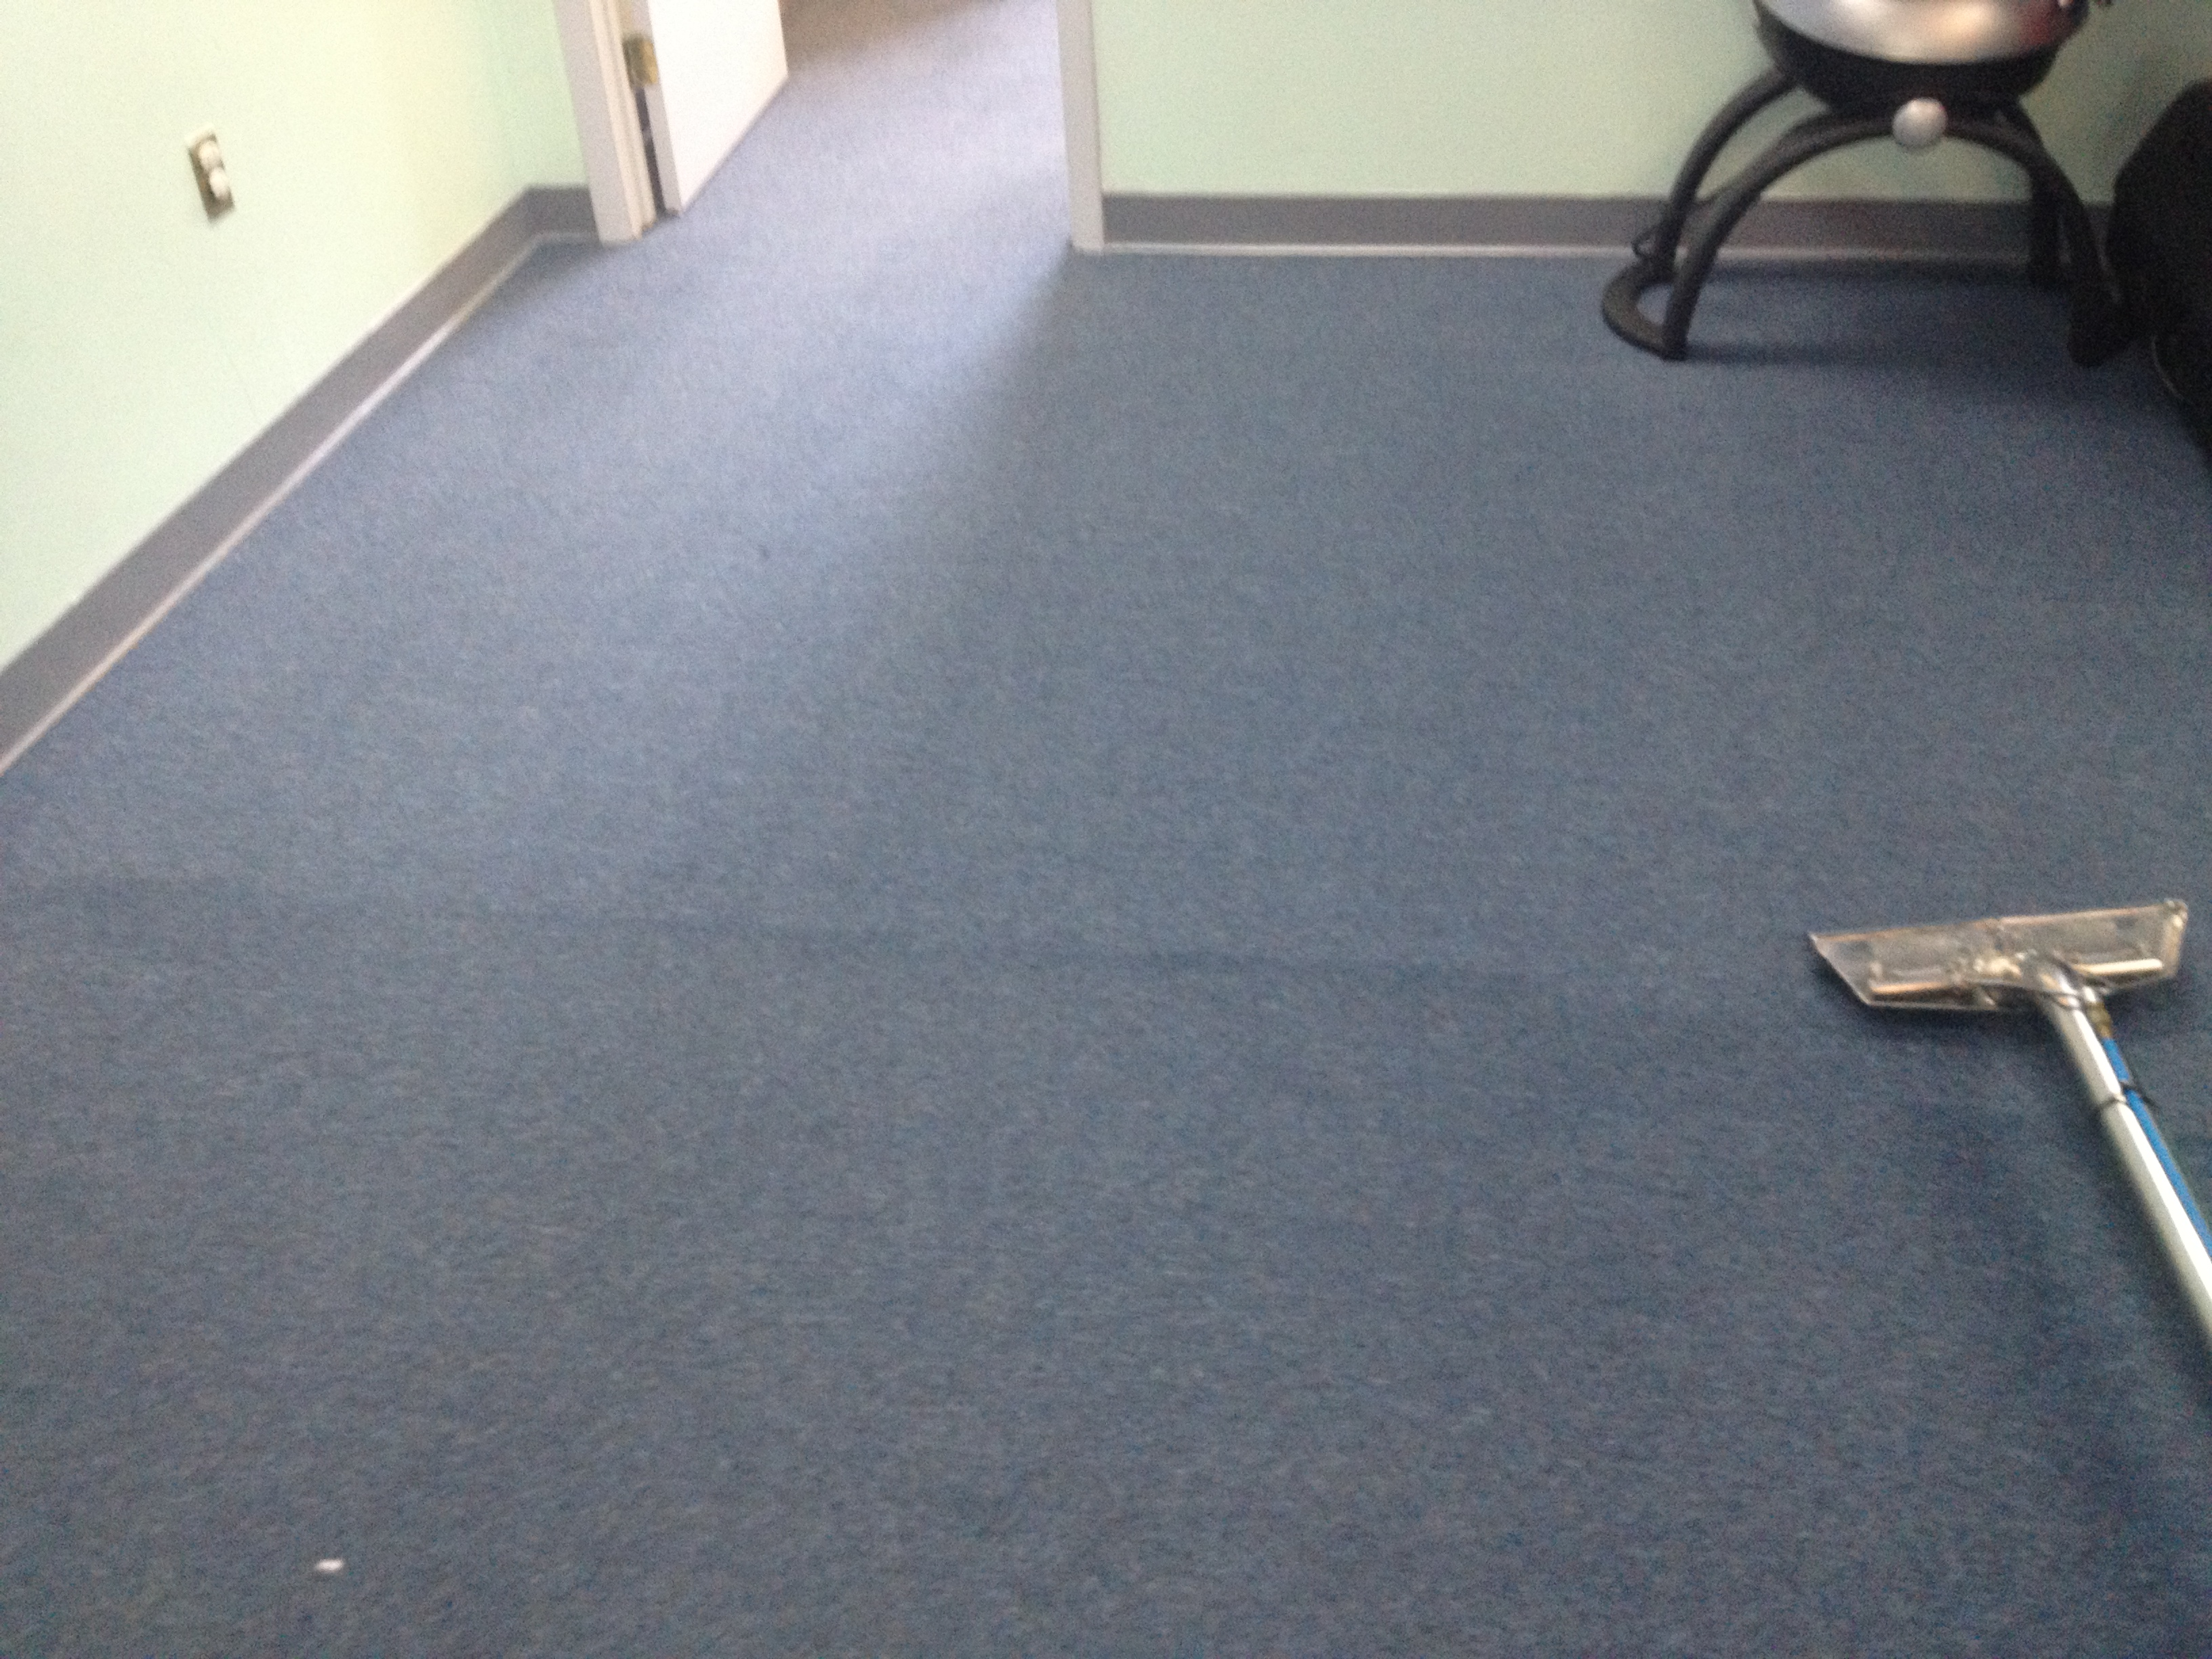 B/P Carpet & Upholstery Cleaning Inc image 9